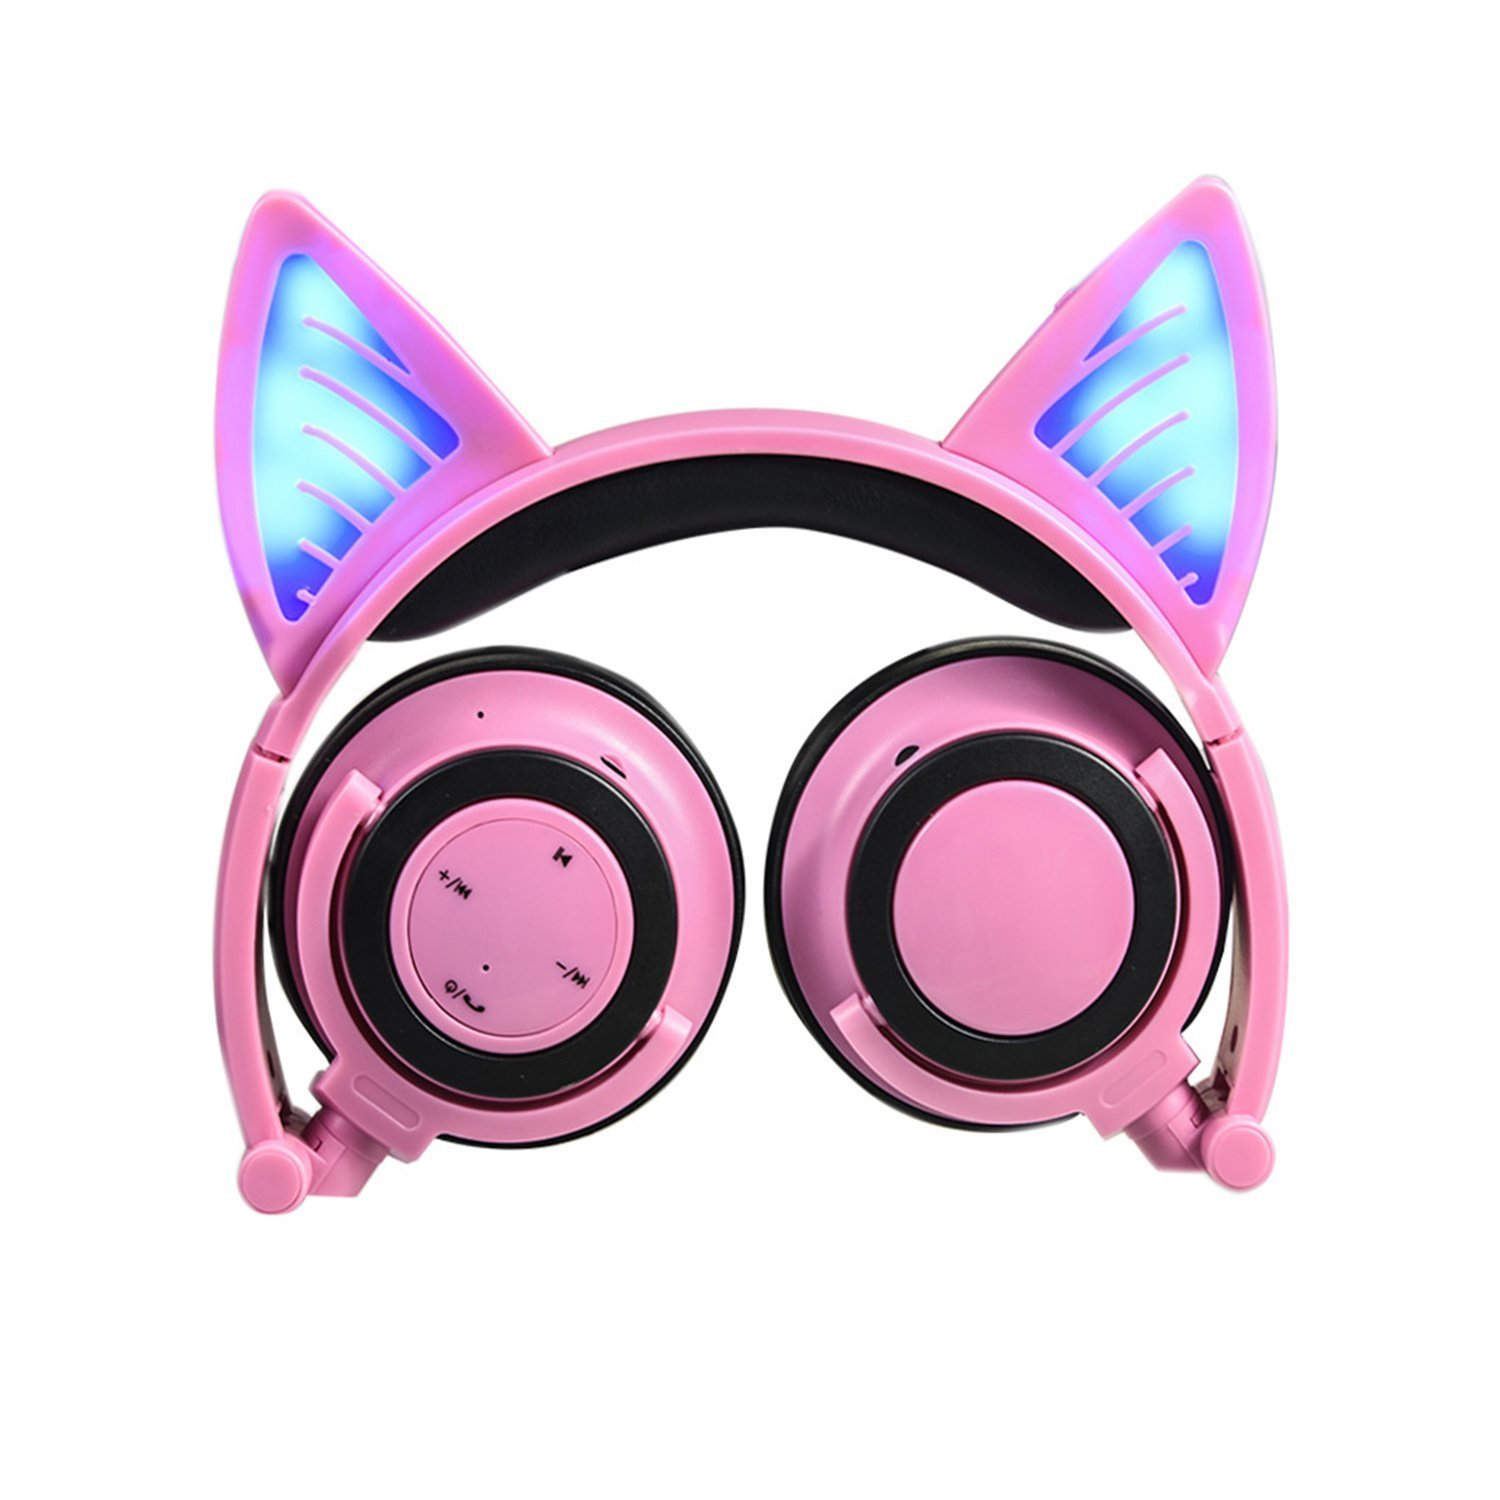 Wireless Bluetooth Cat Ear Headphones Adult, Topways Headset Flashing Glowing Cosplay Fancy Cat Headphones Foldable Over-Ear Earphone with LED Flash Light for Android Mobile Phone,Macbook (Pink)